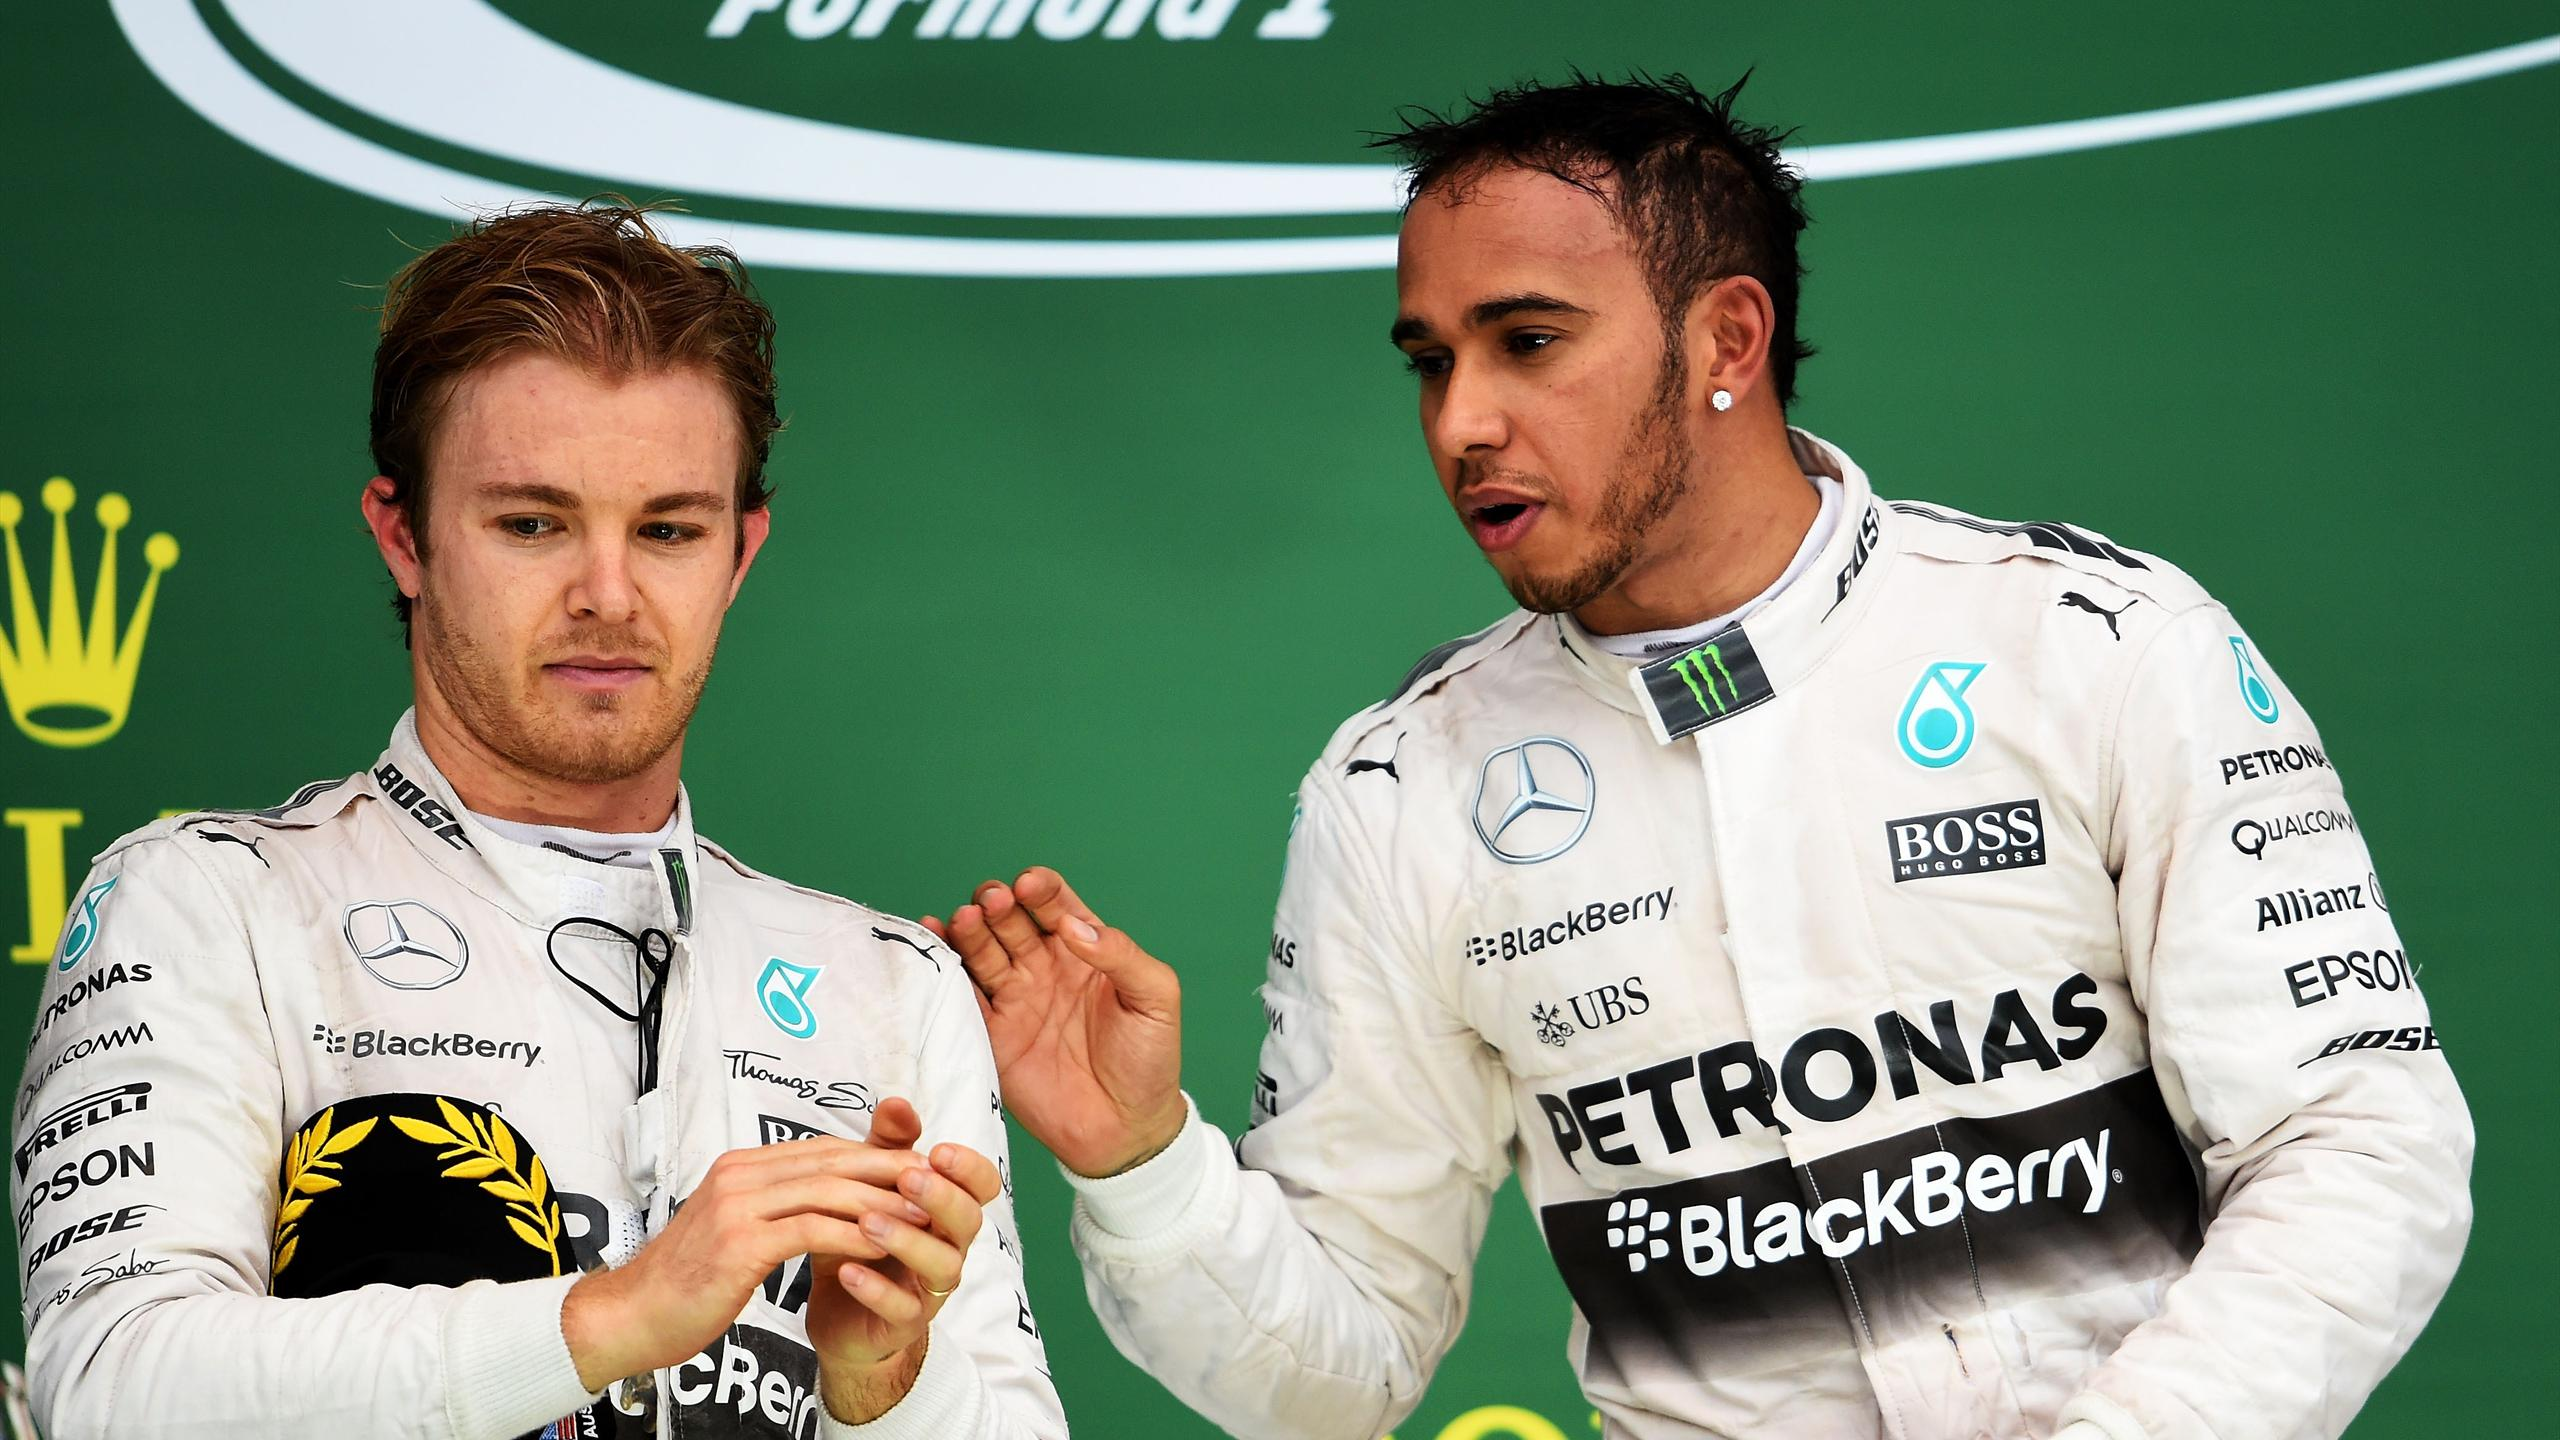 Mercedes team-mates Nico Rosberg and Lewis Hamilton